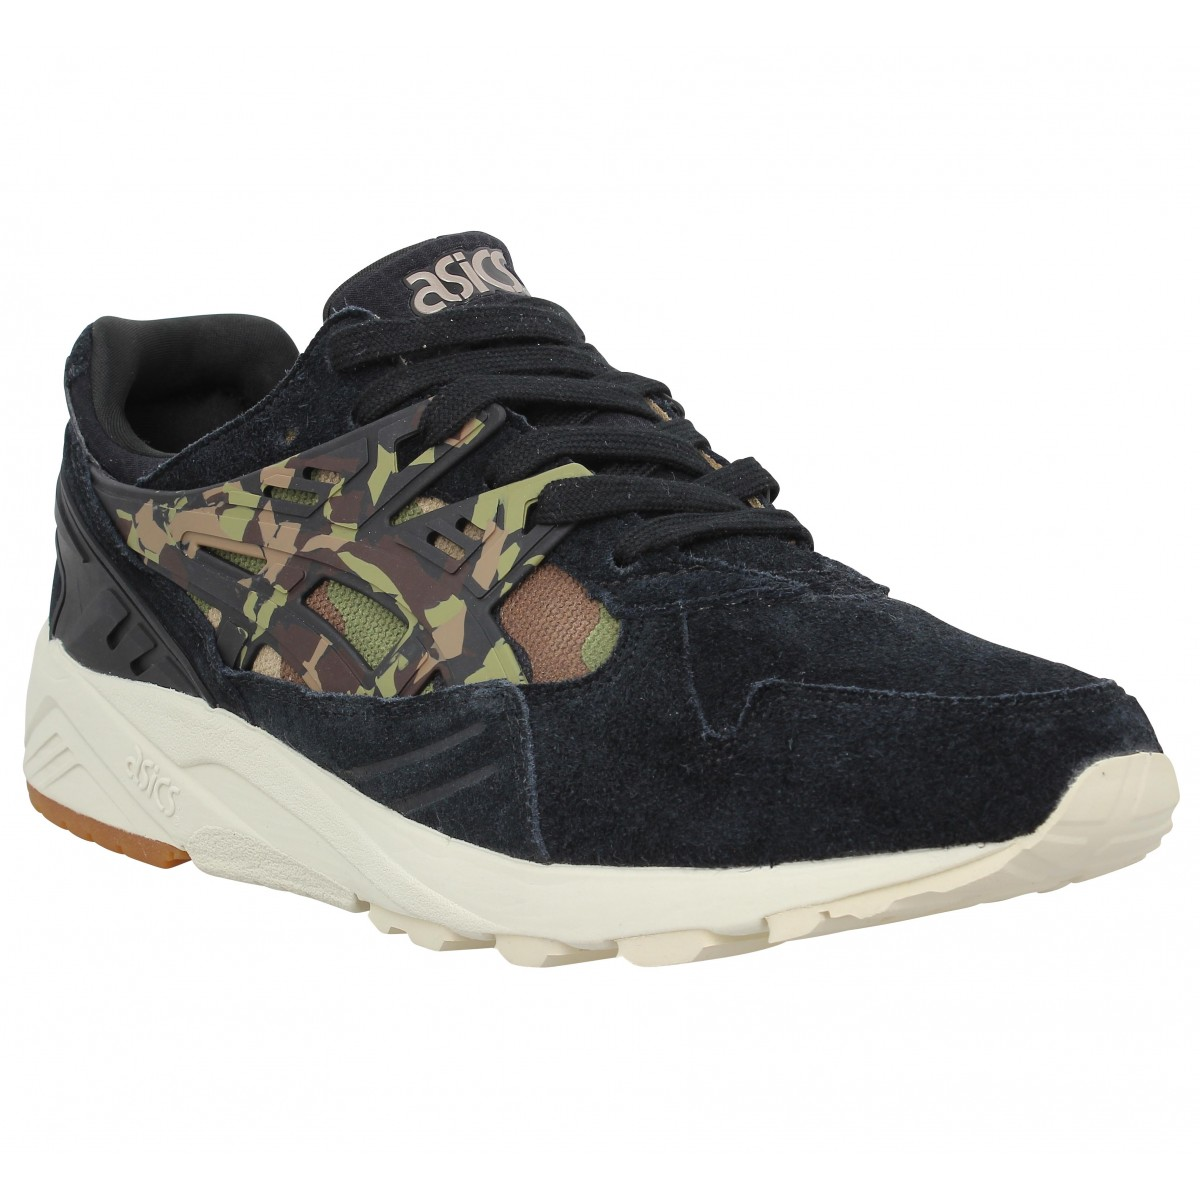 Baskets ASICS Gel Kayano Trainer Evo velours Homme Noir Olive